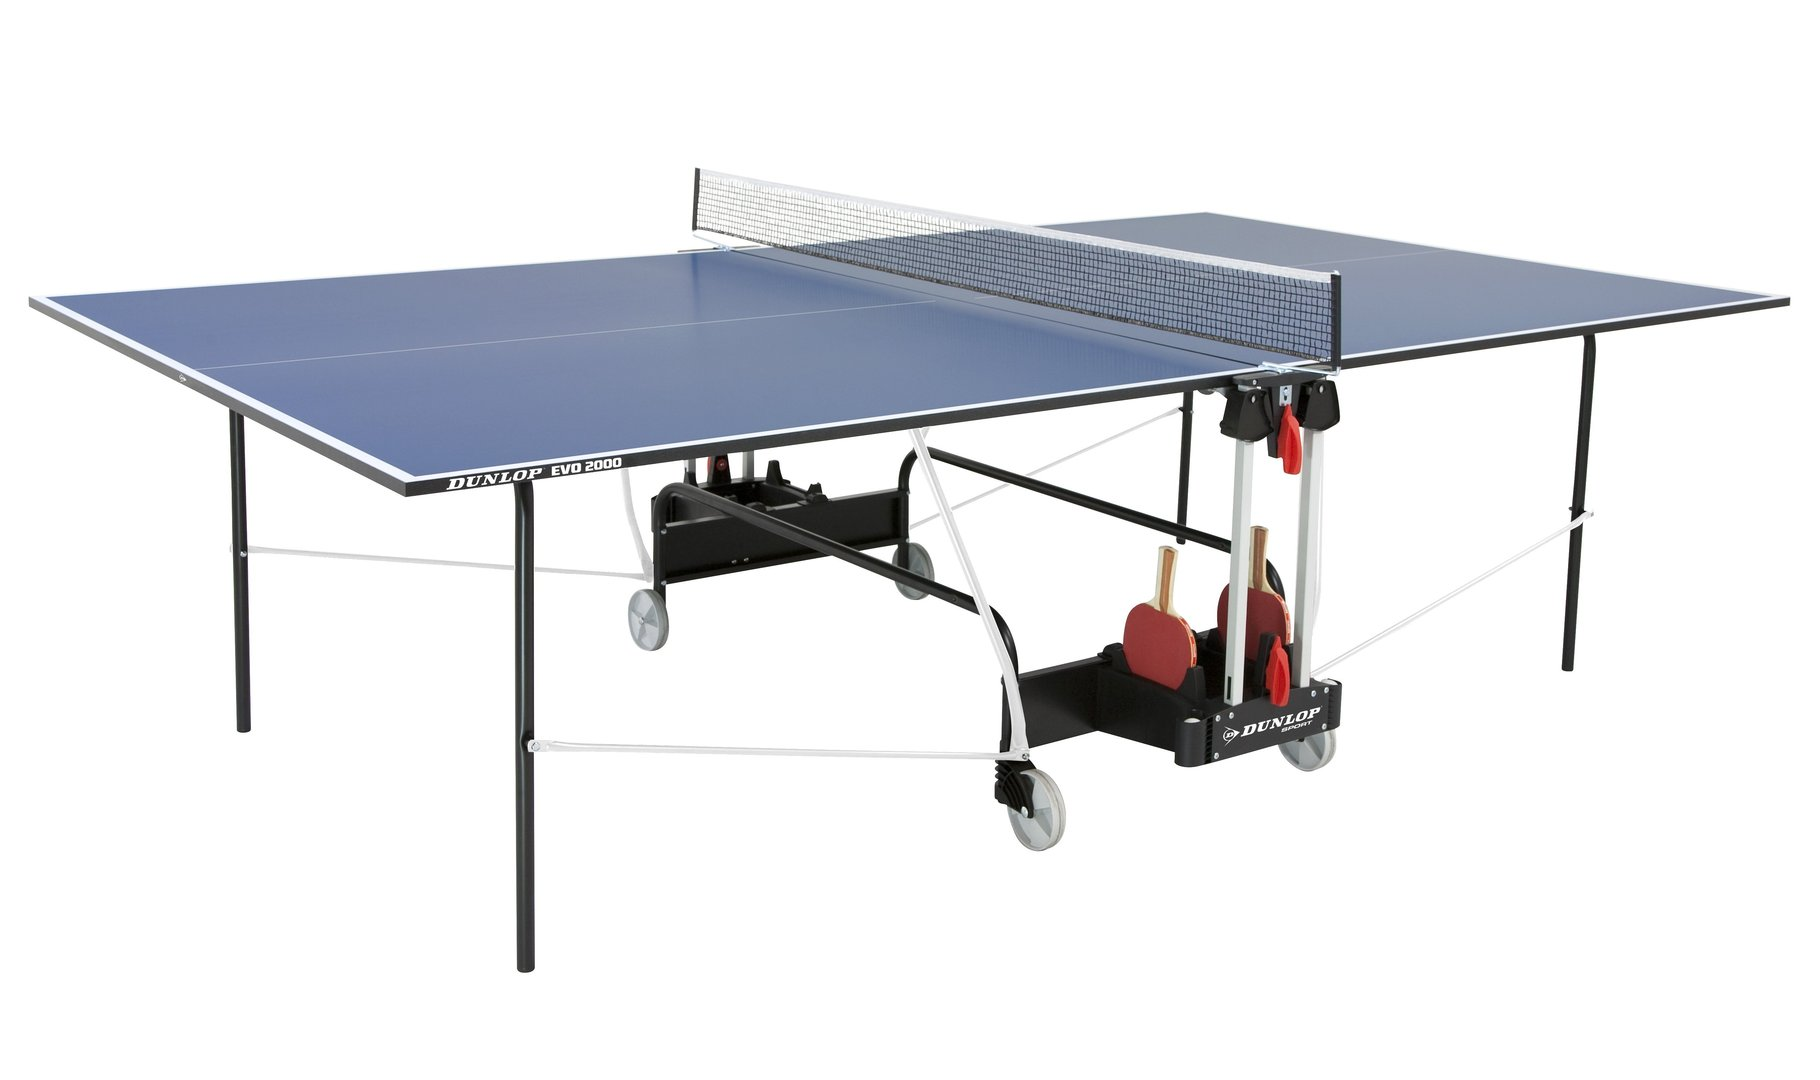 Dunlop evo 2000 full size indoor table tennis table in - Full size table tennis table dimensions ...